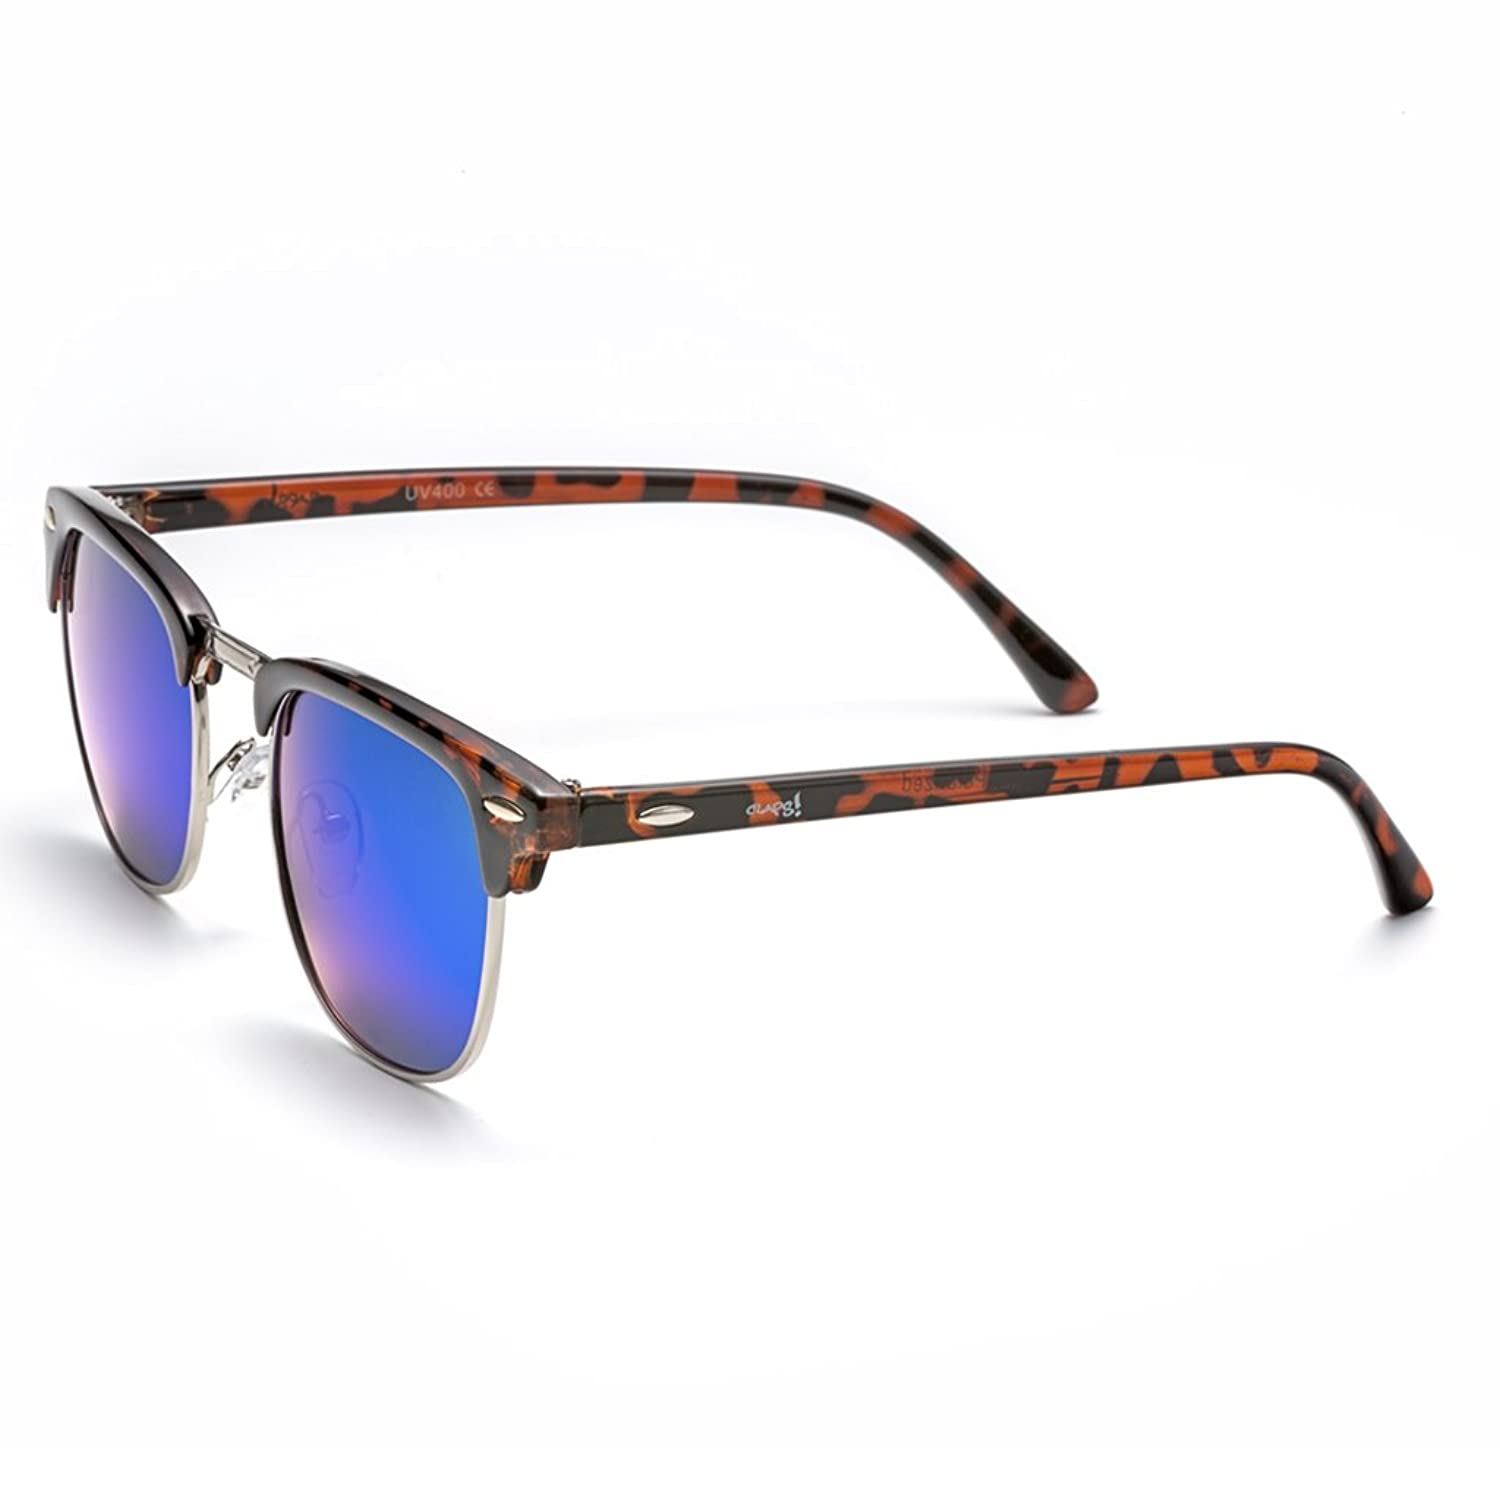 Worldly-Line - Carey & Green - Gafas de sol Polarizadas: Amazon.es: Ropa y accesorios